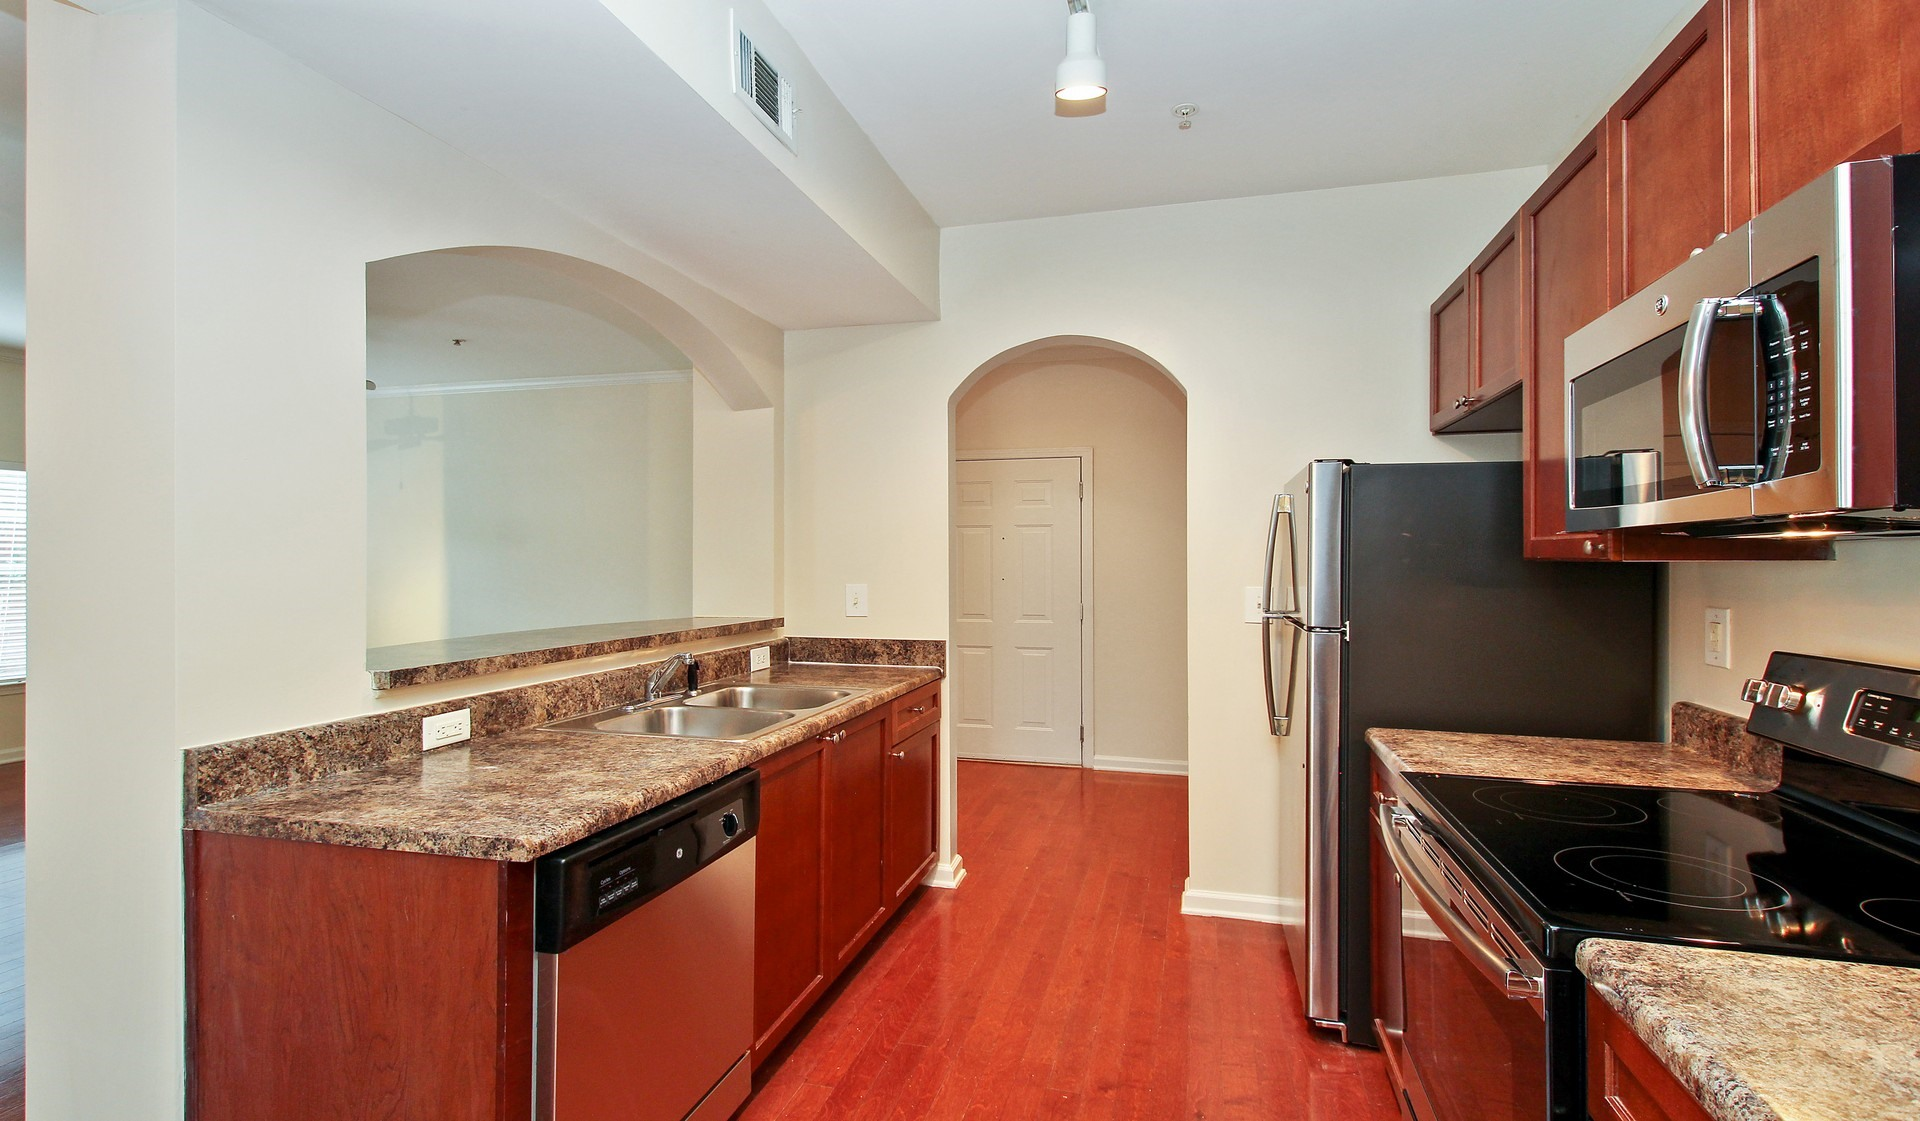 https://www.peachtreeparkapartments.com/content/dam/aimco-properties/039110/1920x1121/interior/Tuscan_kitchen.jpg